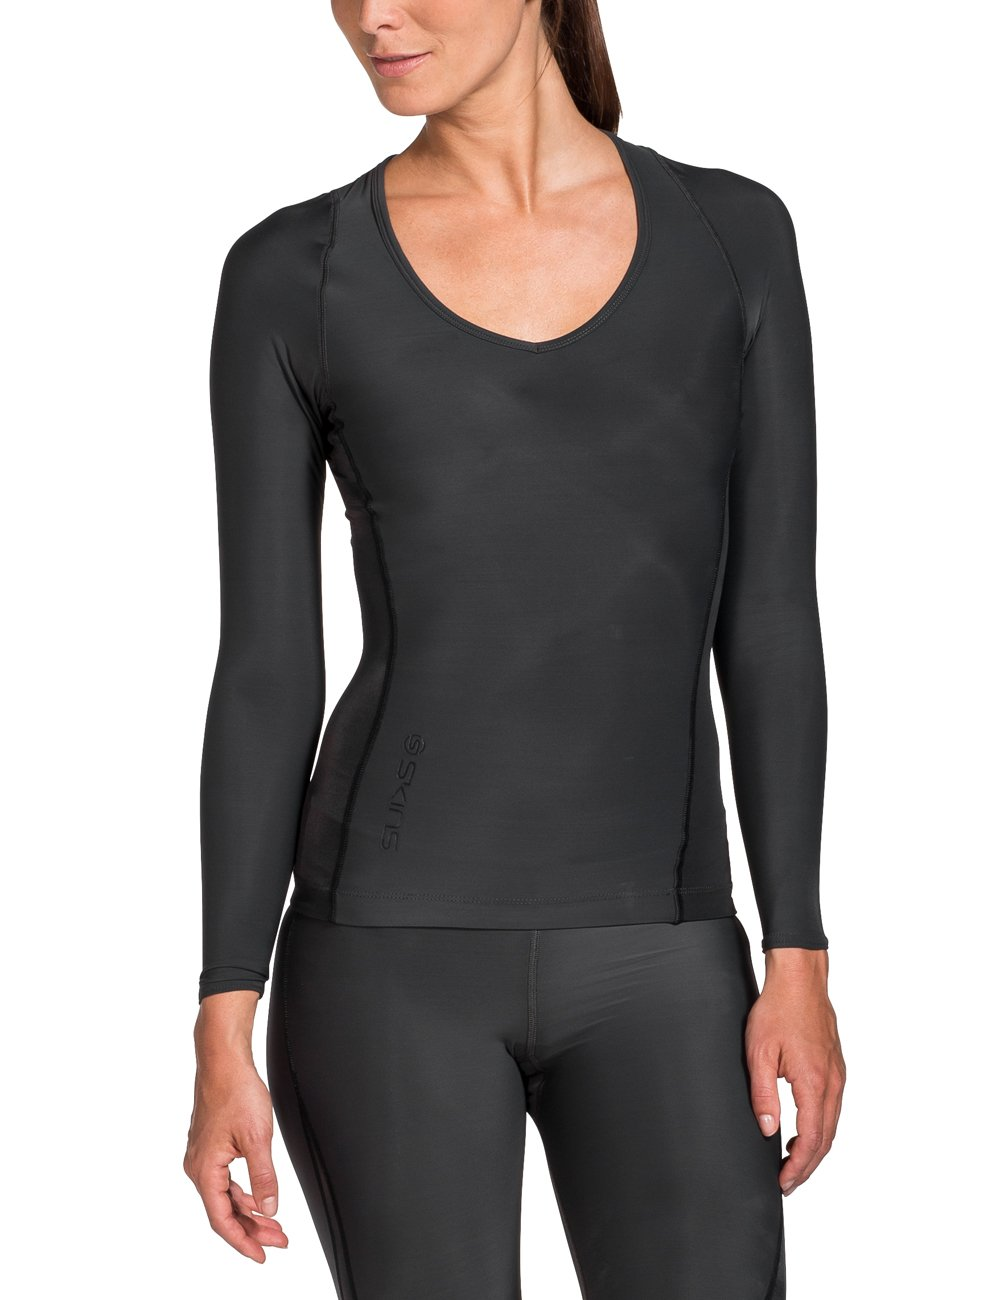 Skins Women's Ry400 Recovery Long Sleeve Top, Black, SmallH